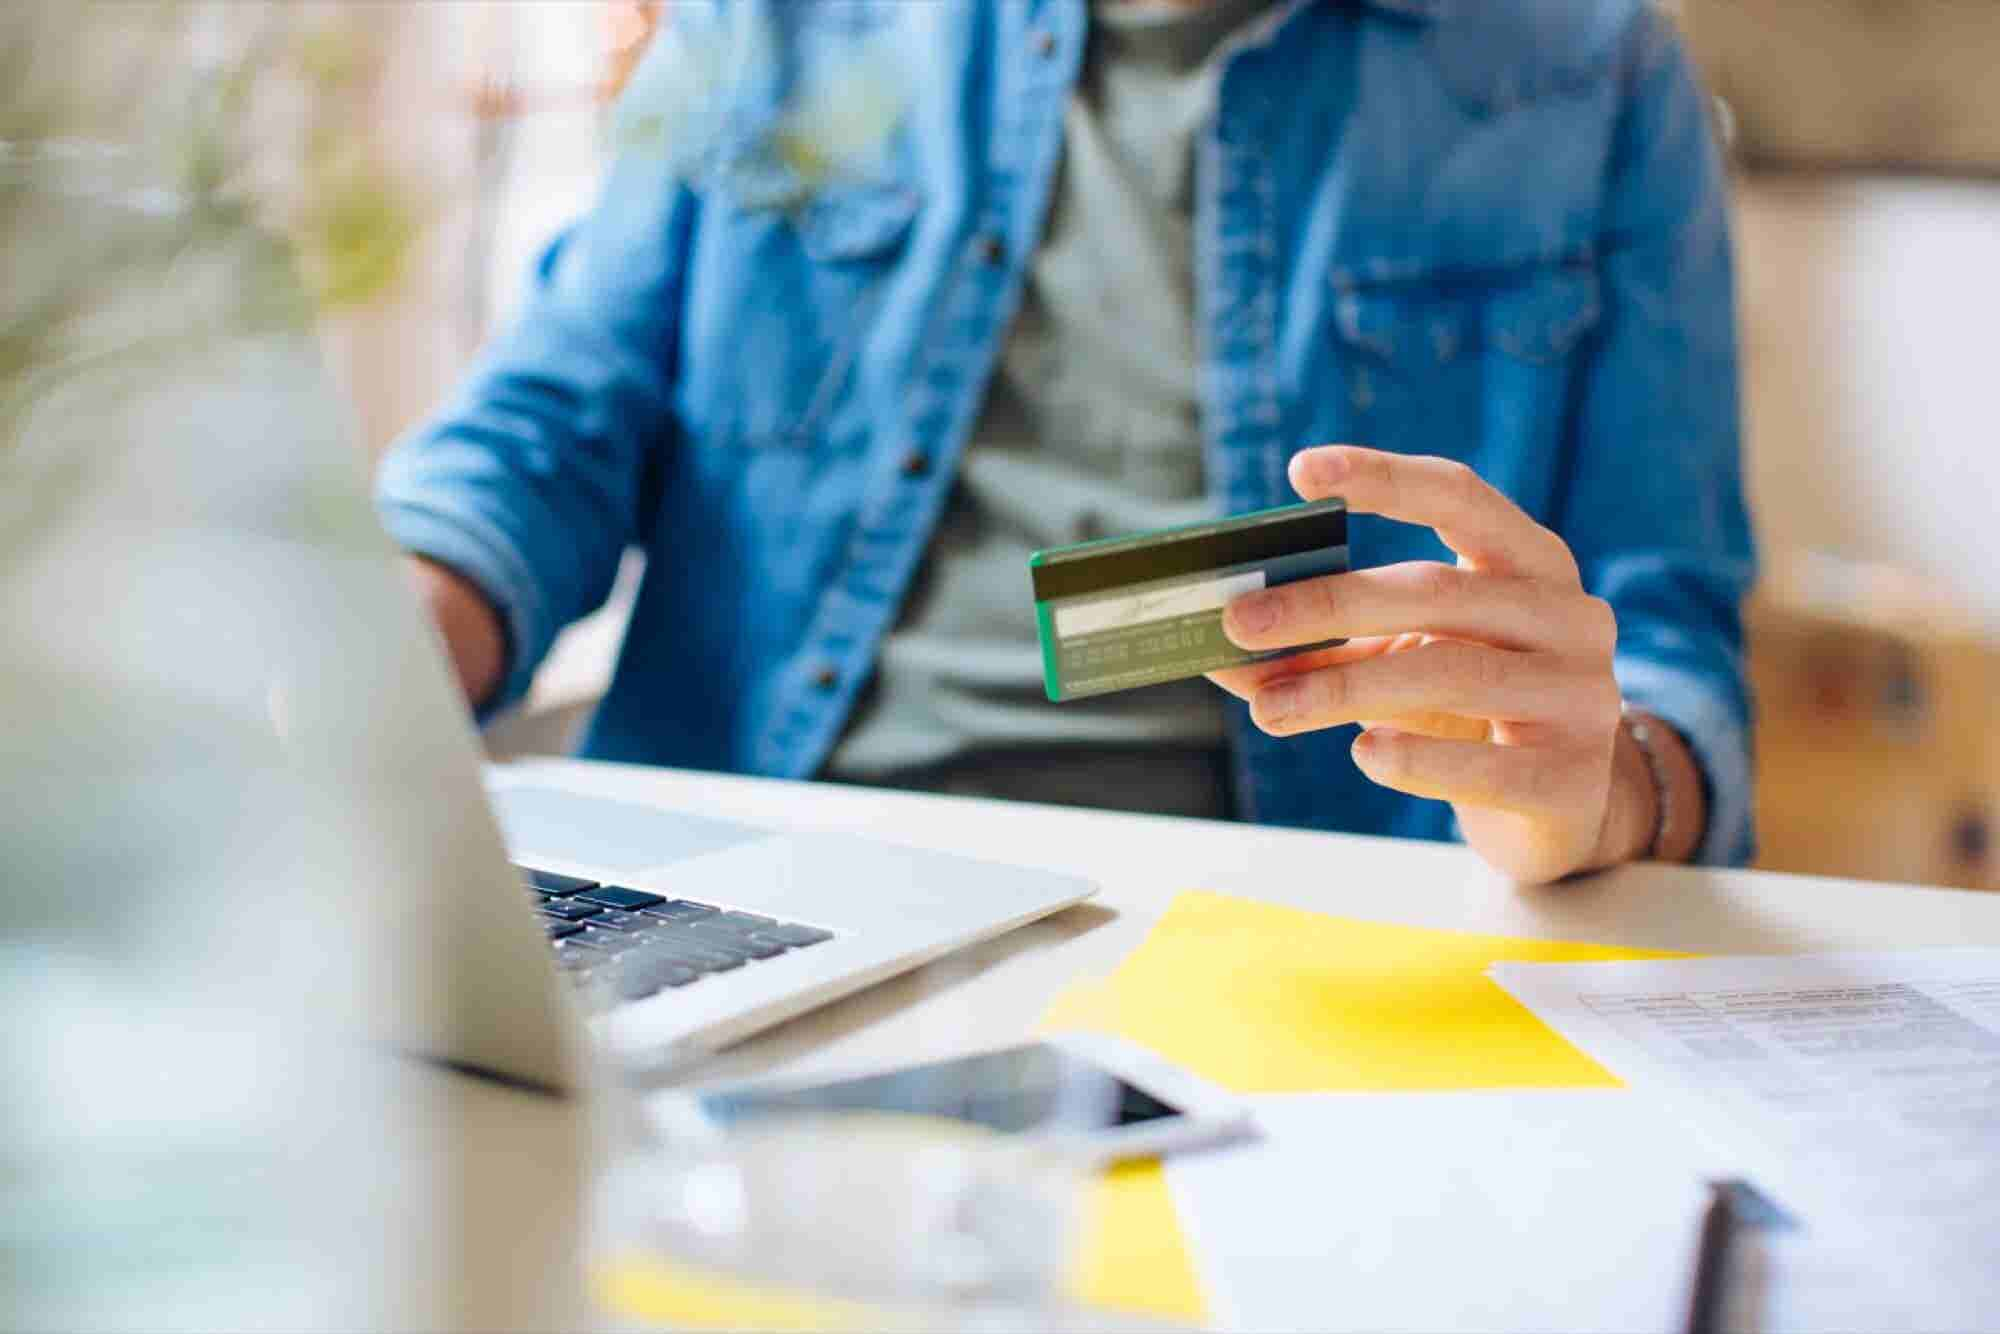 To Succeed in 2018, Ecommerce Entrepreneurs Must Focus on This One Change